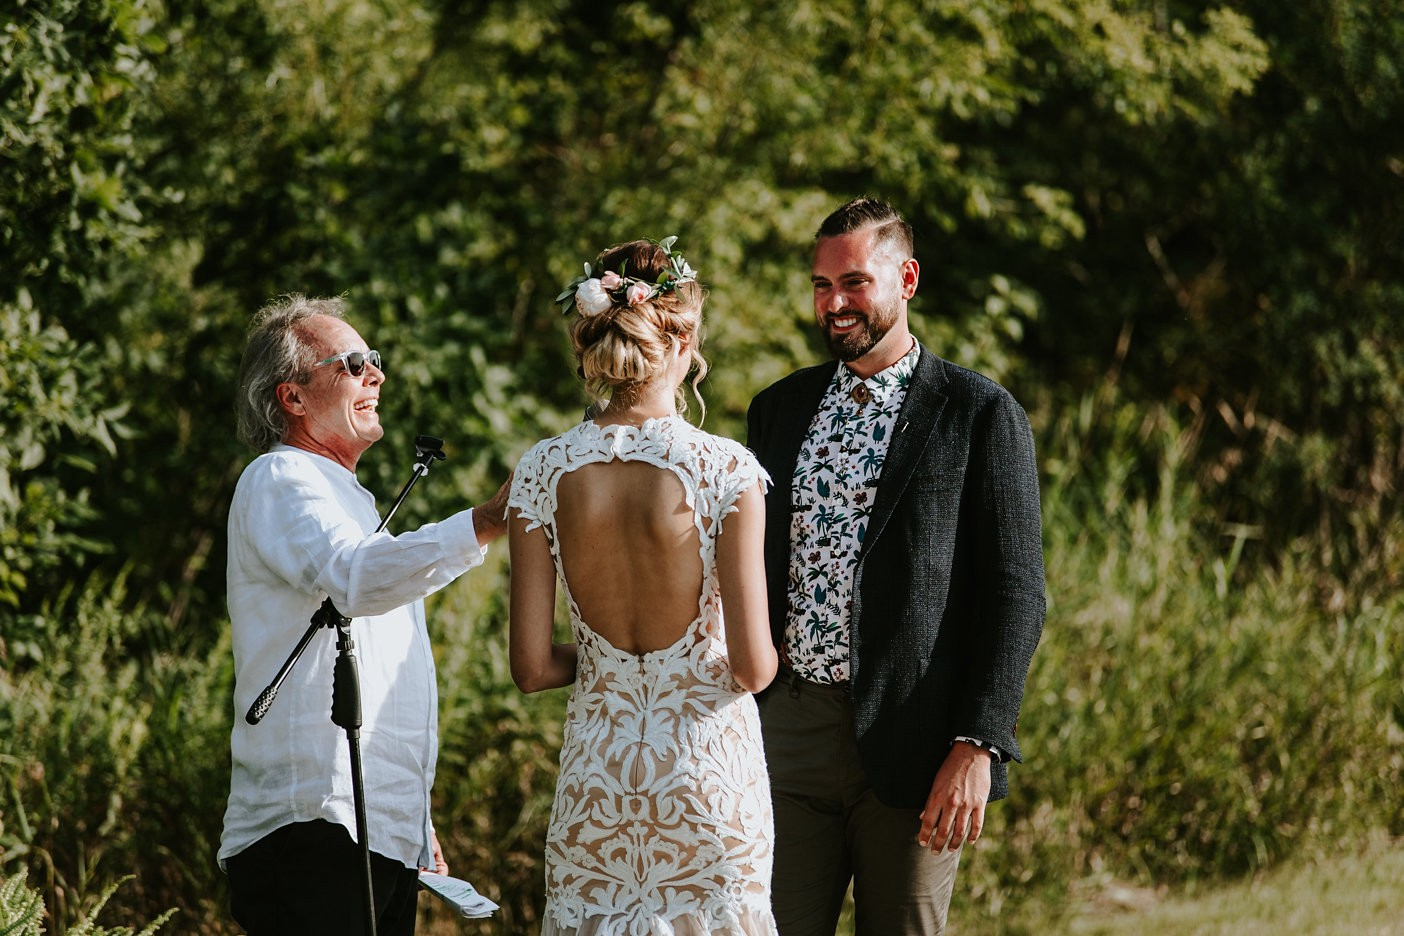 danyelle and tristan pollock say their vows